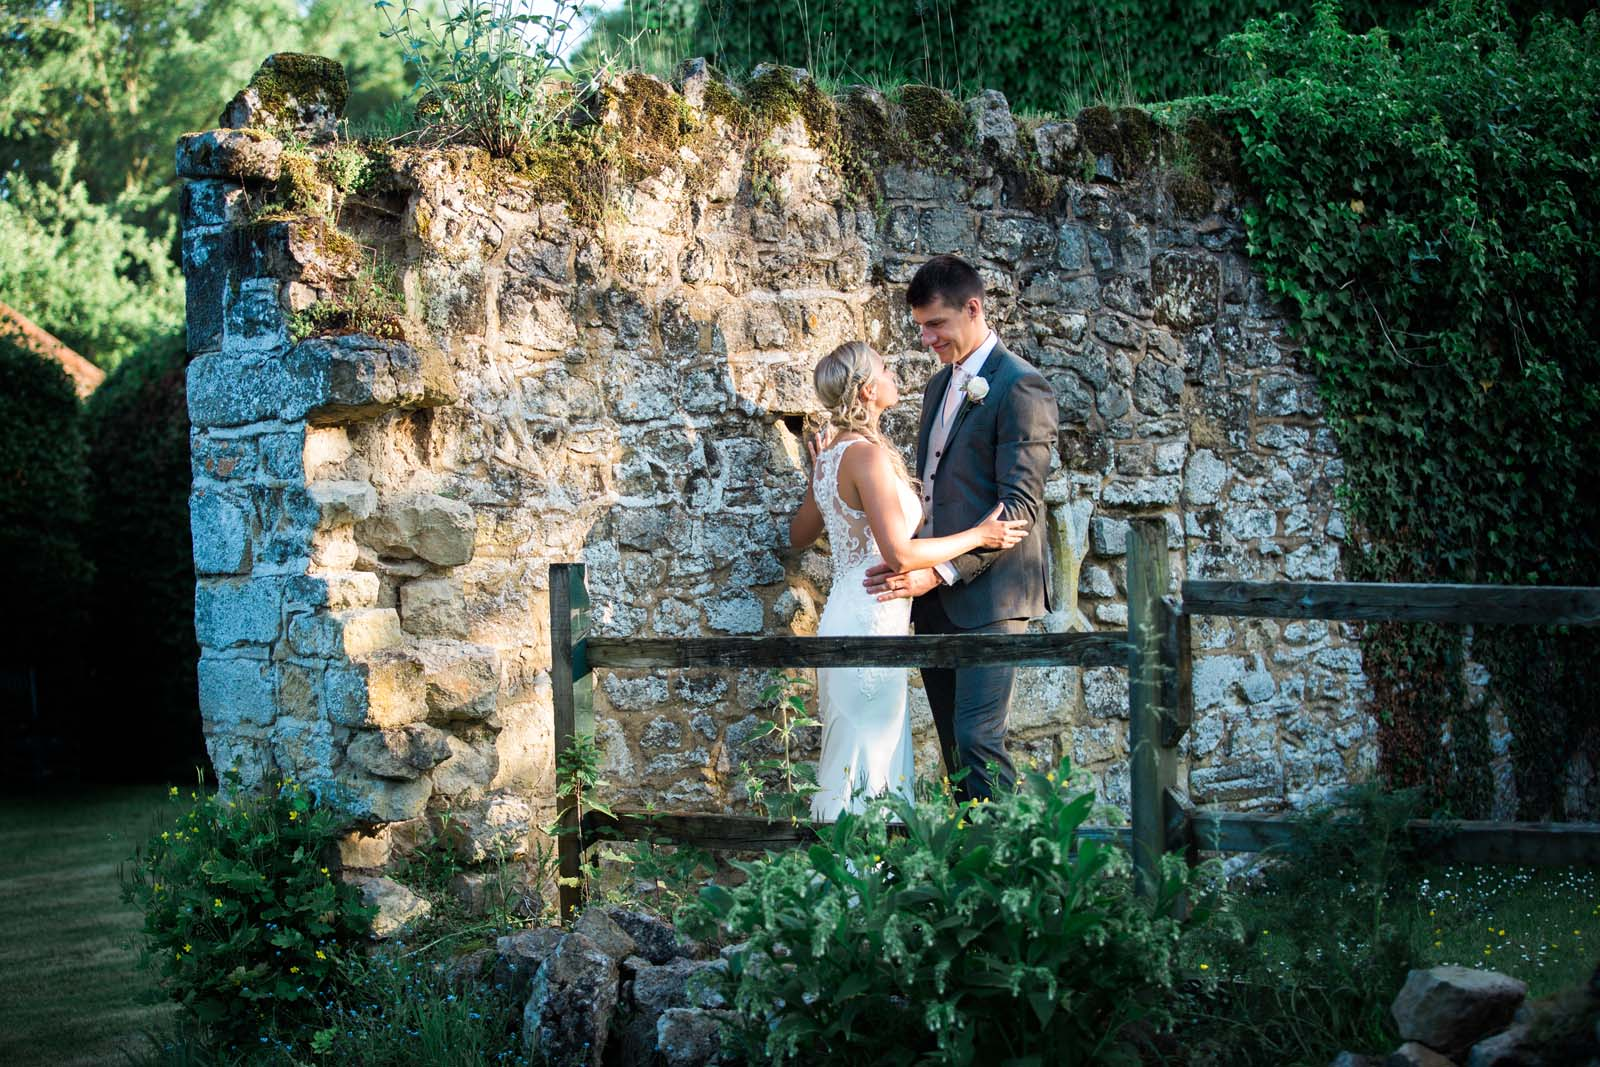 Notley Abbey wedding couple having a romantic moment in the walled garden